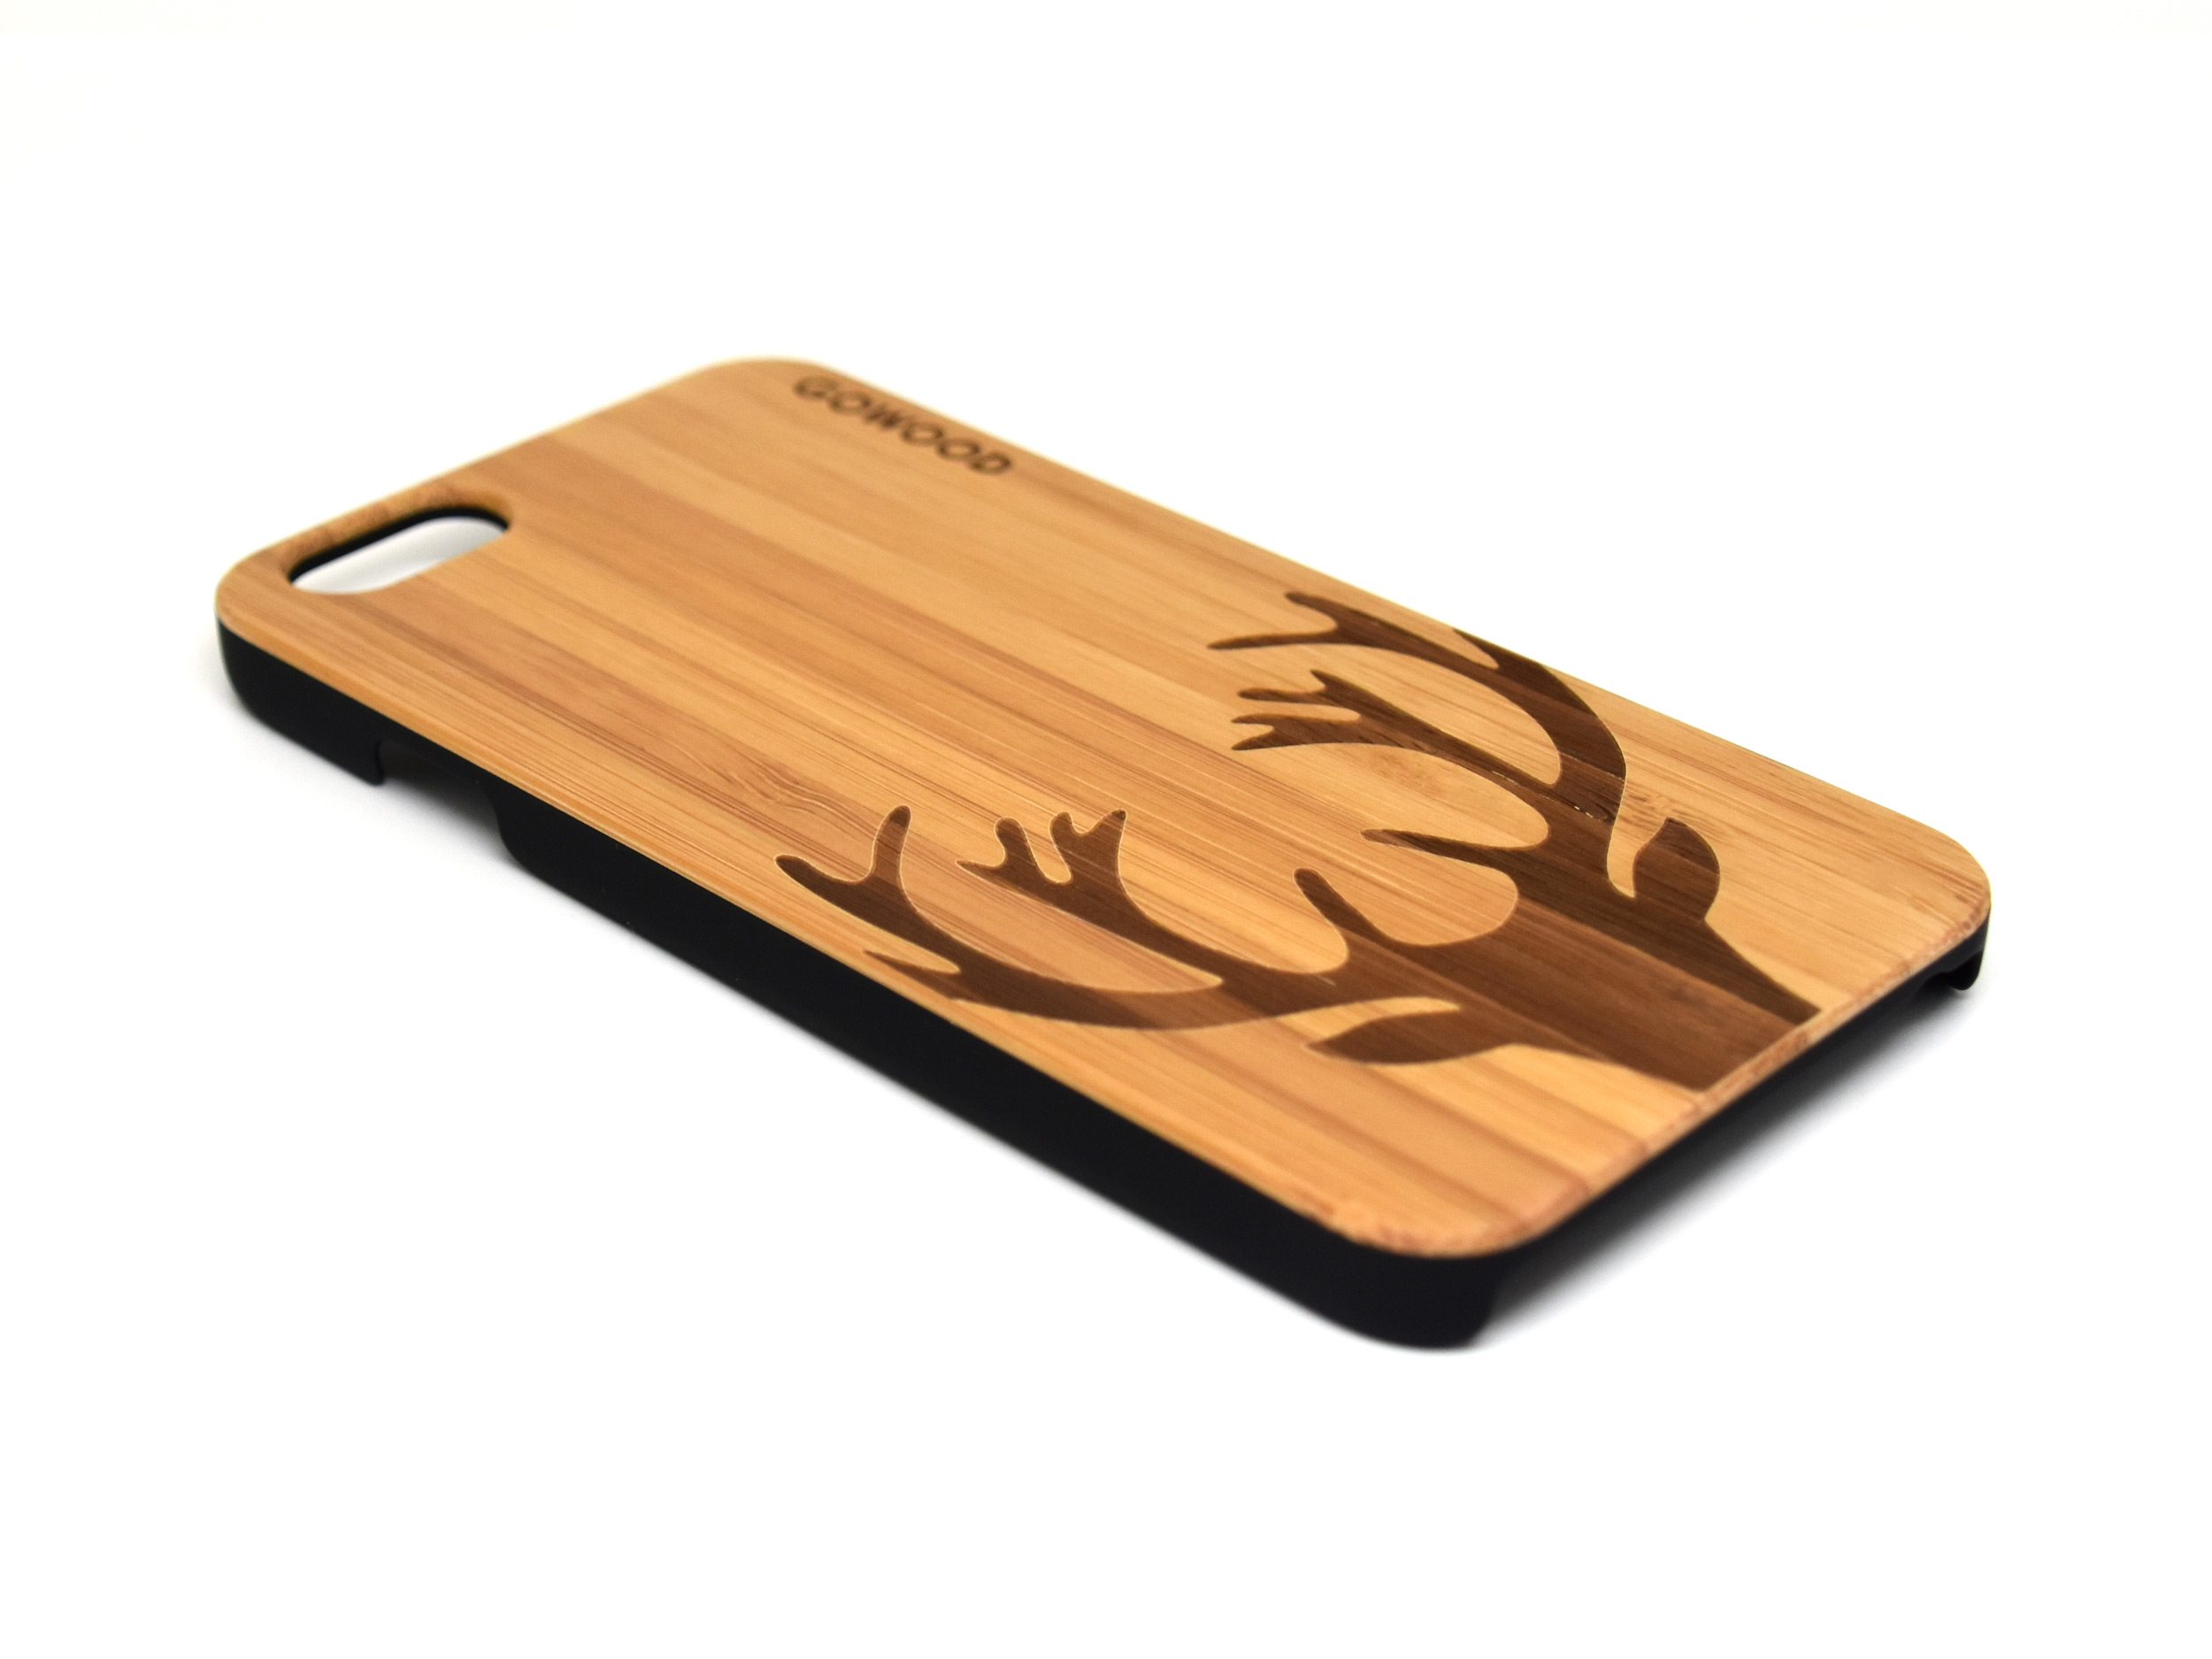 iphone 6 case bamboo wood with deer